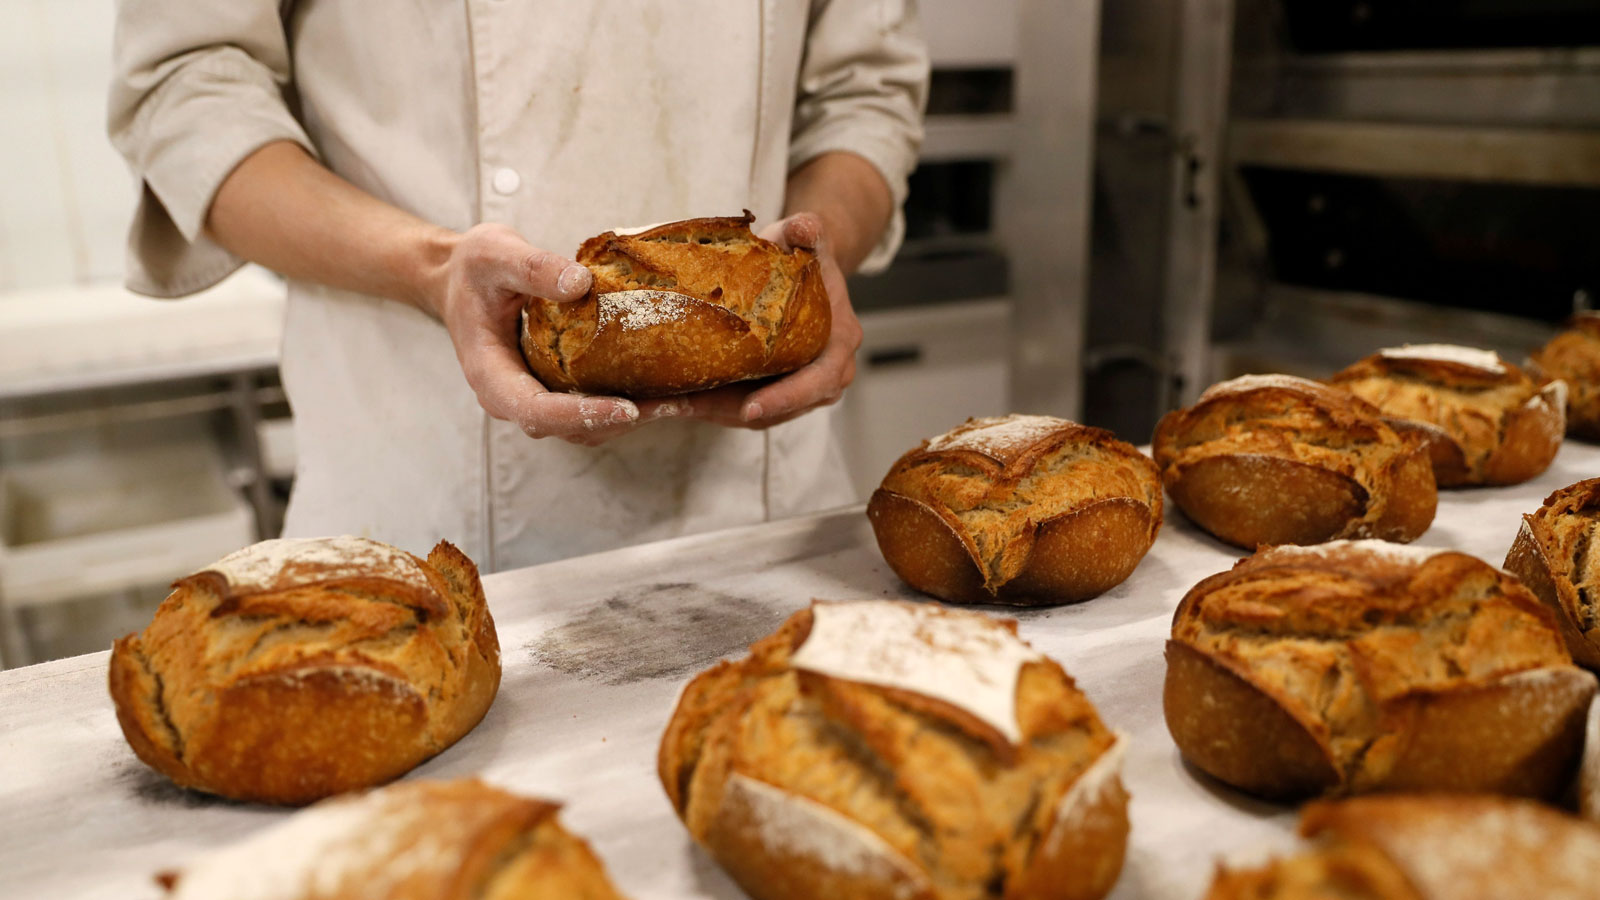 Corporate Food in Paris: Why the French Are Wary of Big Brioche